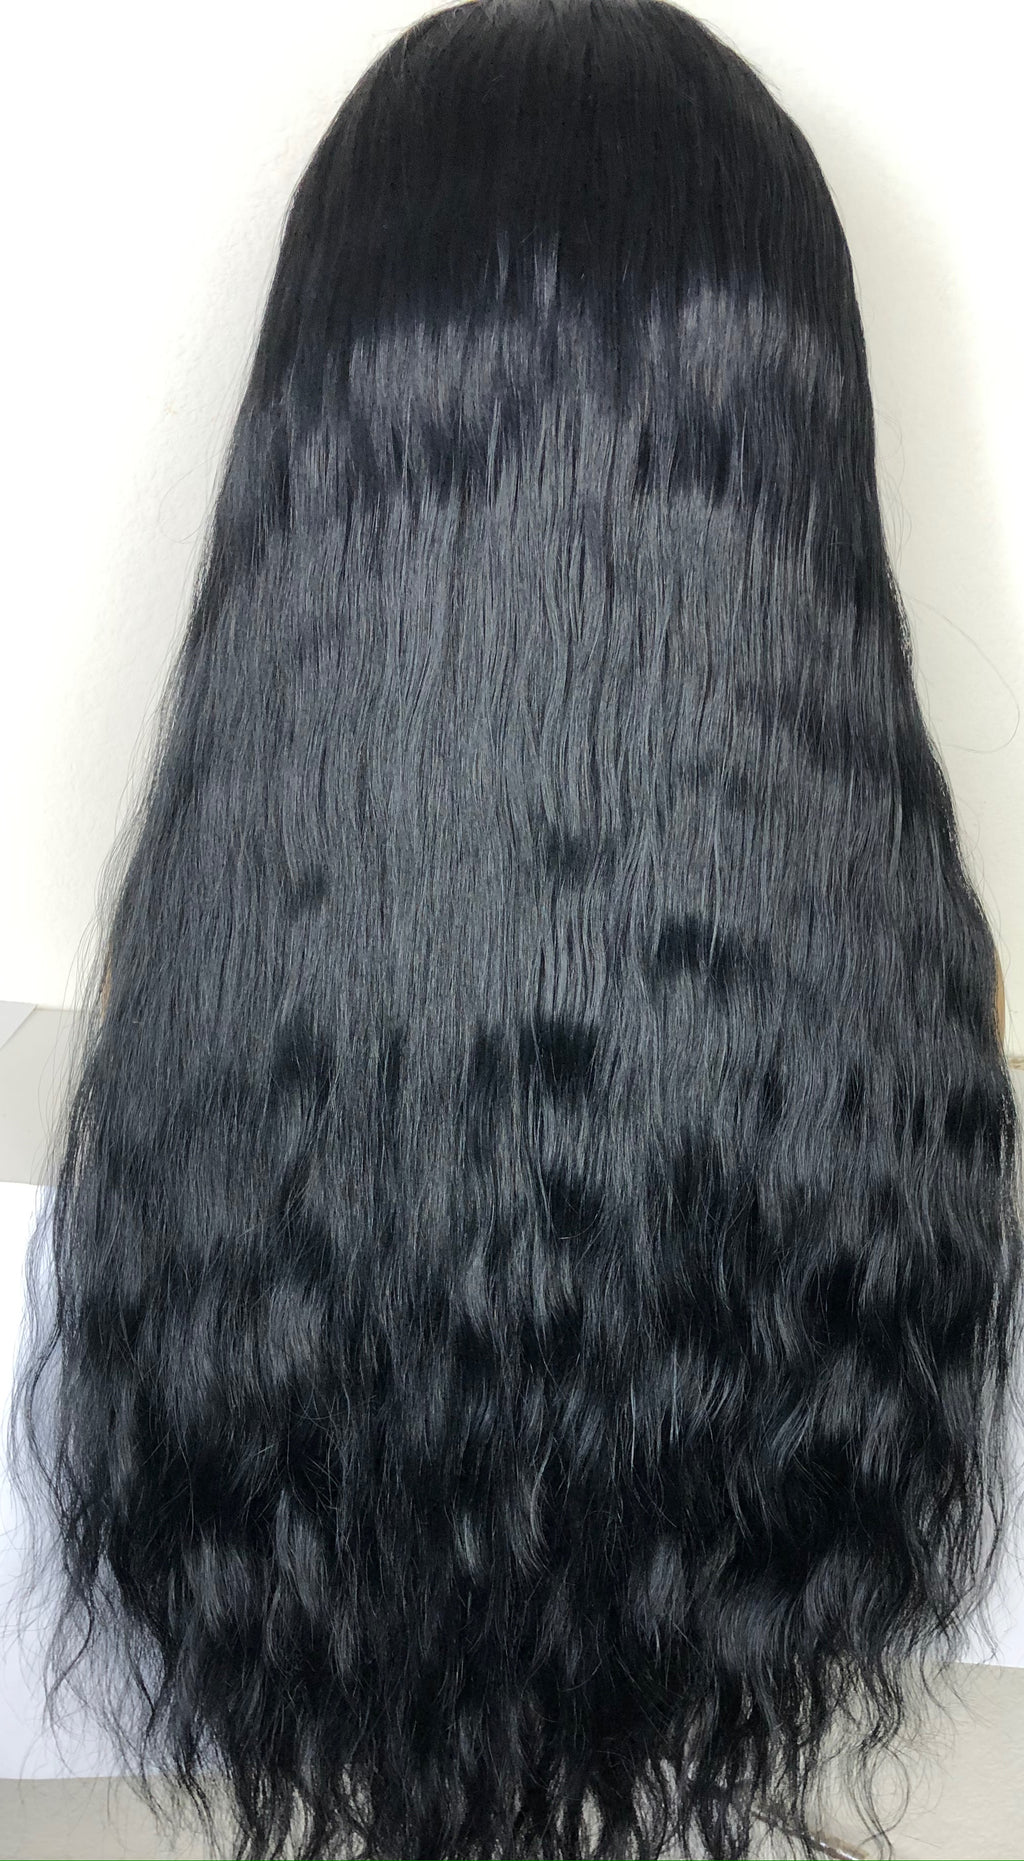 "SOLD Clearance Discontinued Full Lace Wig Item #6844 | Large 23"" Cap"